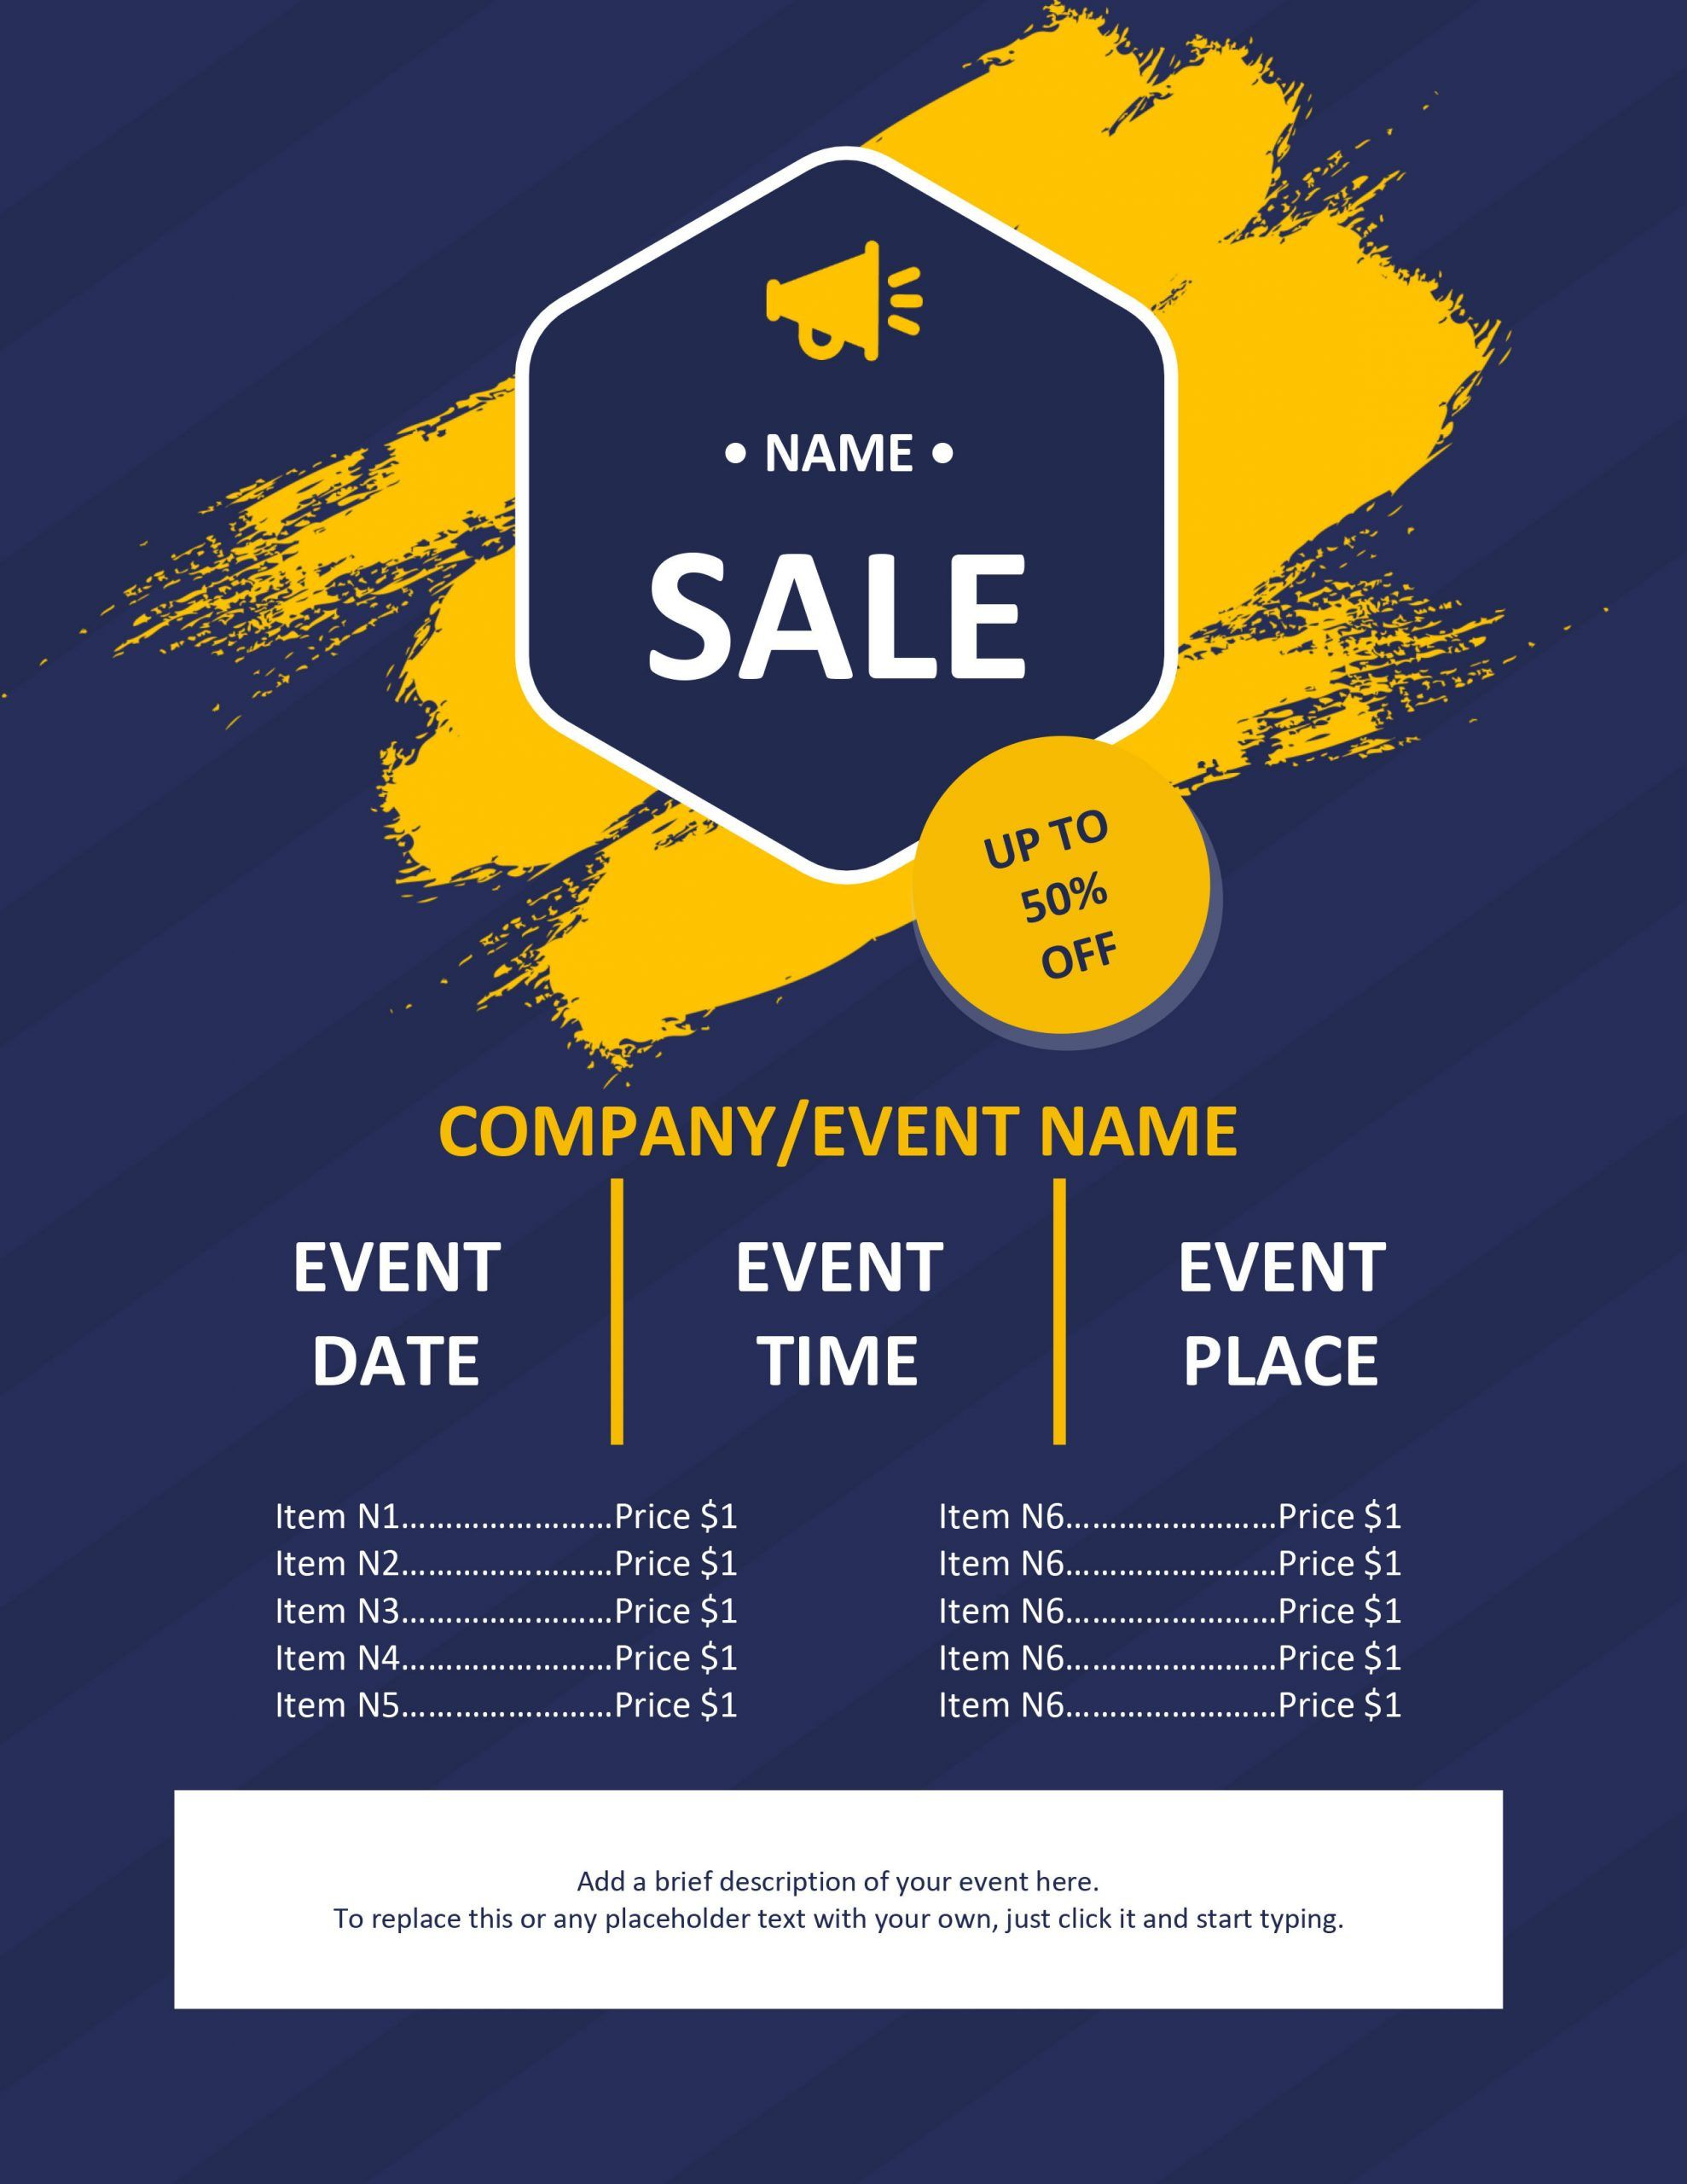 Microsoft Word Flyer Template In 2020 Event Flyer Templates Event Flyer Flyer Microsoft word event flyer template